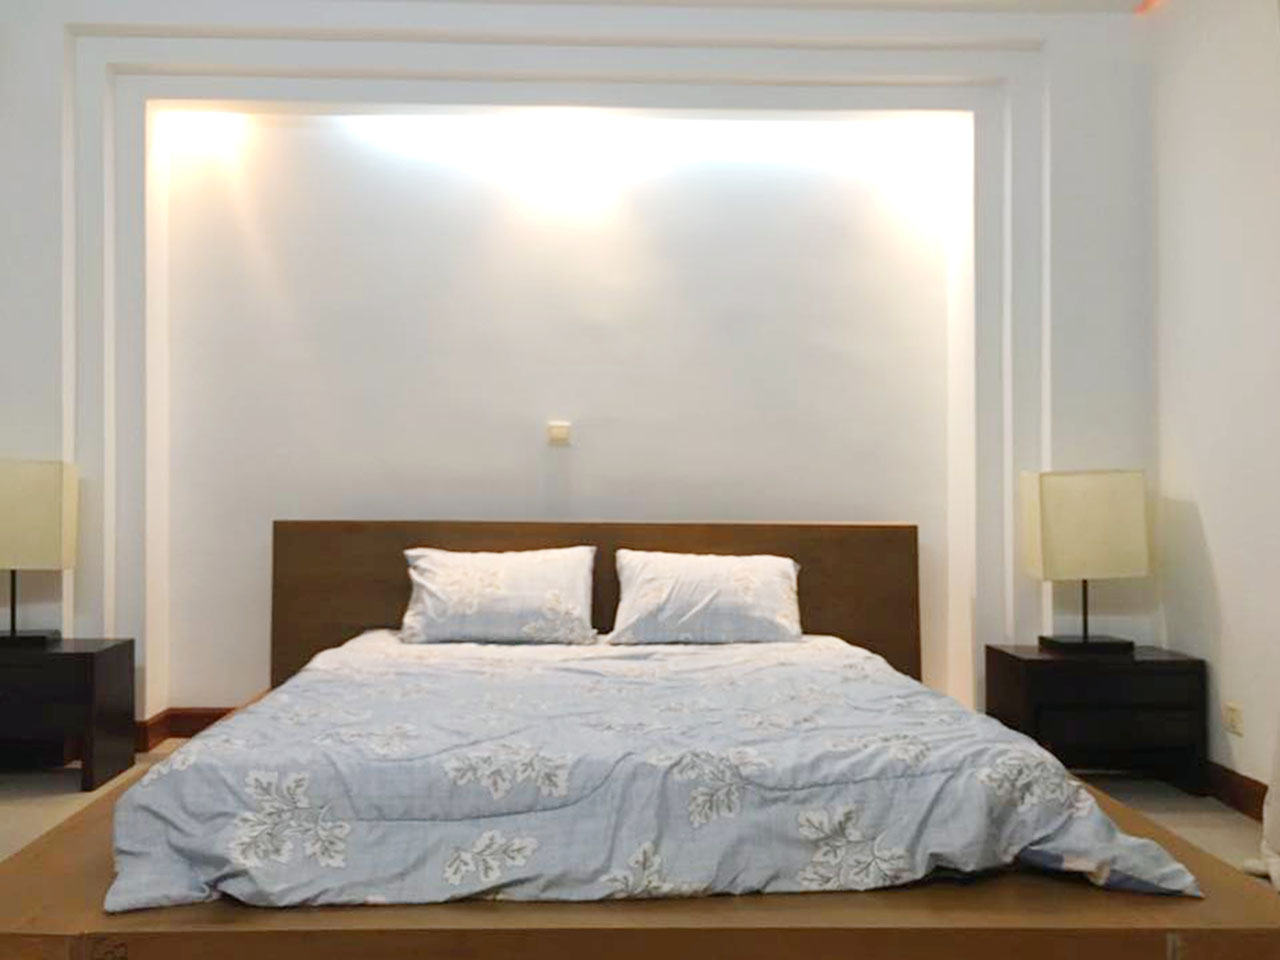 Special 2 bedrooms apartment for rent @ Tuol Tumpoung